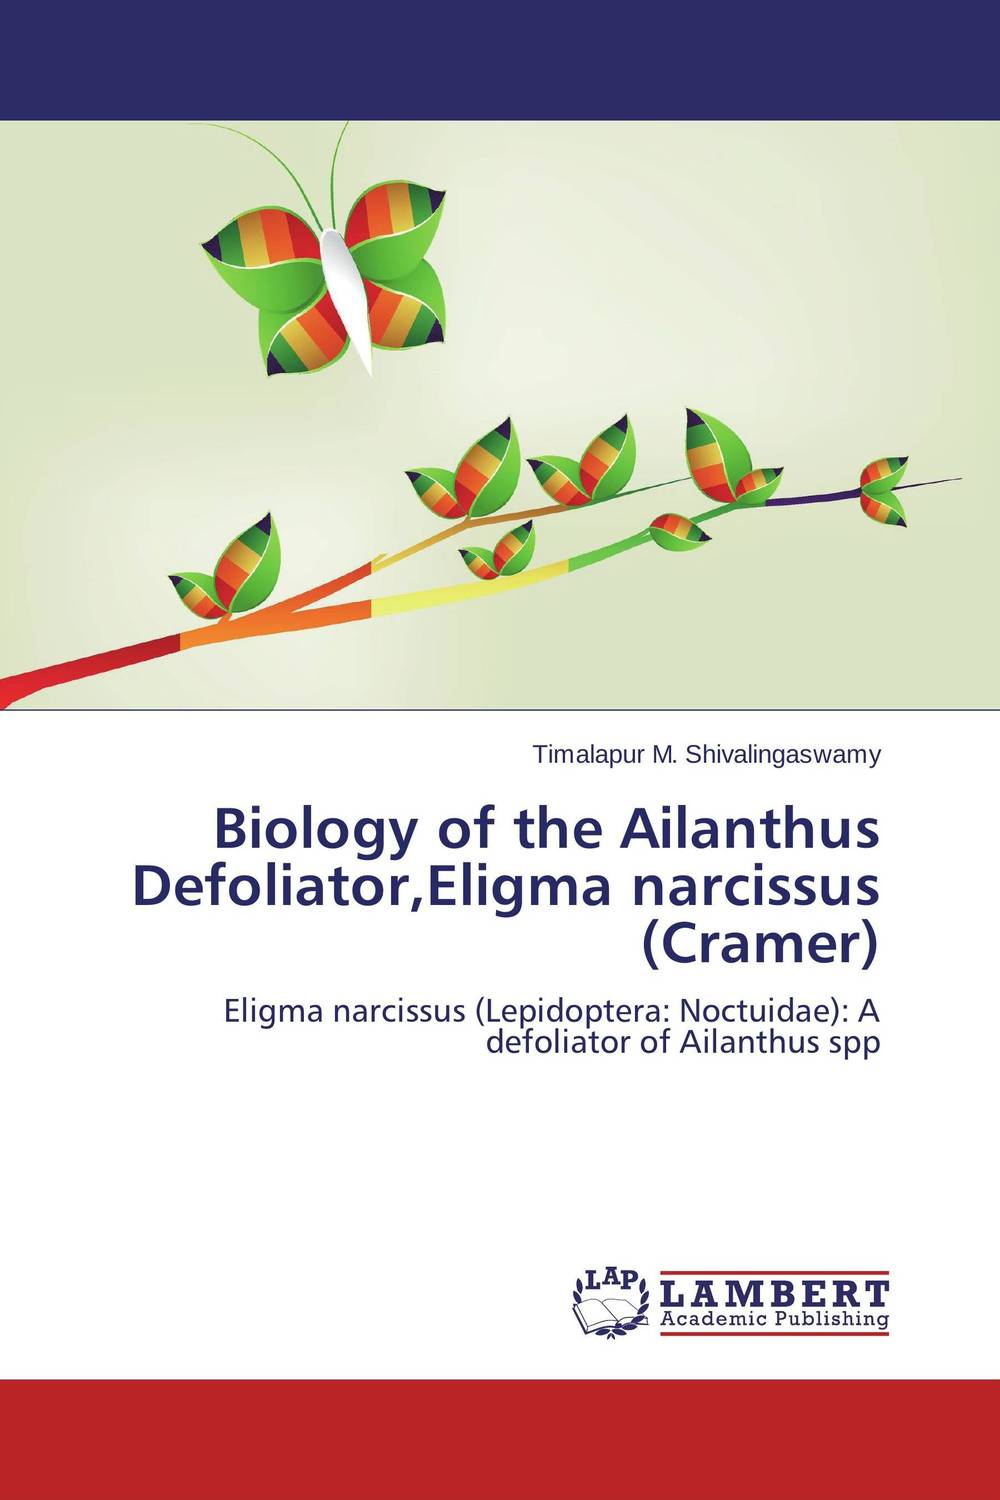 Biology of the Ailanthus Defoliator,Eligma narcissus (Cramer) studies on two medicinally important plants